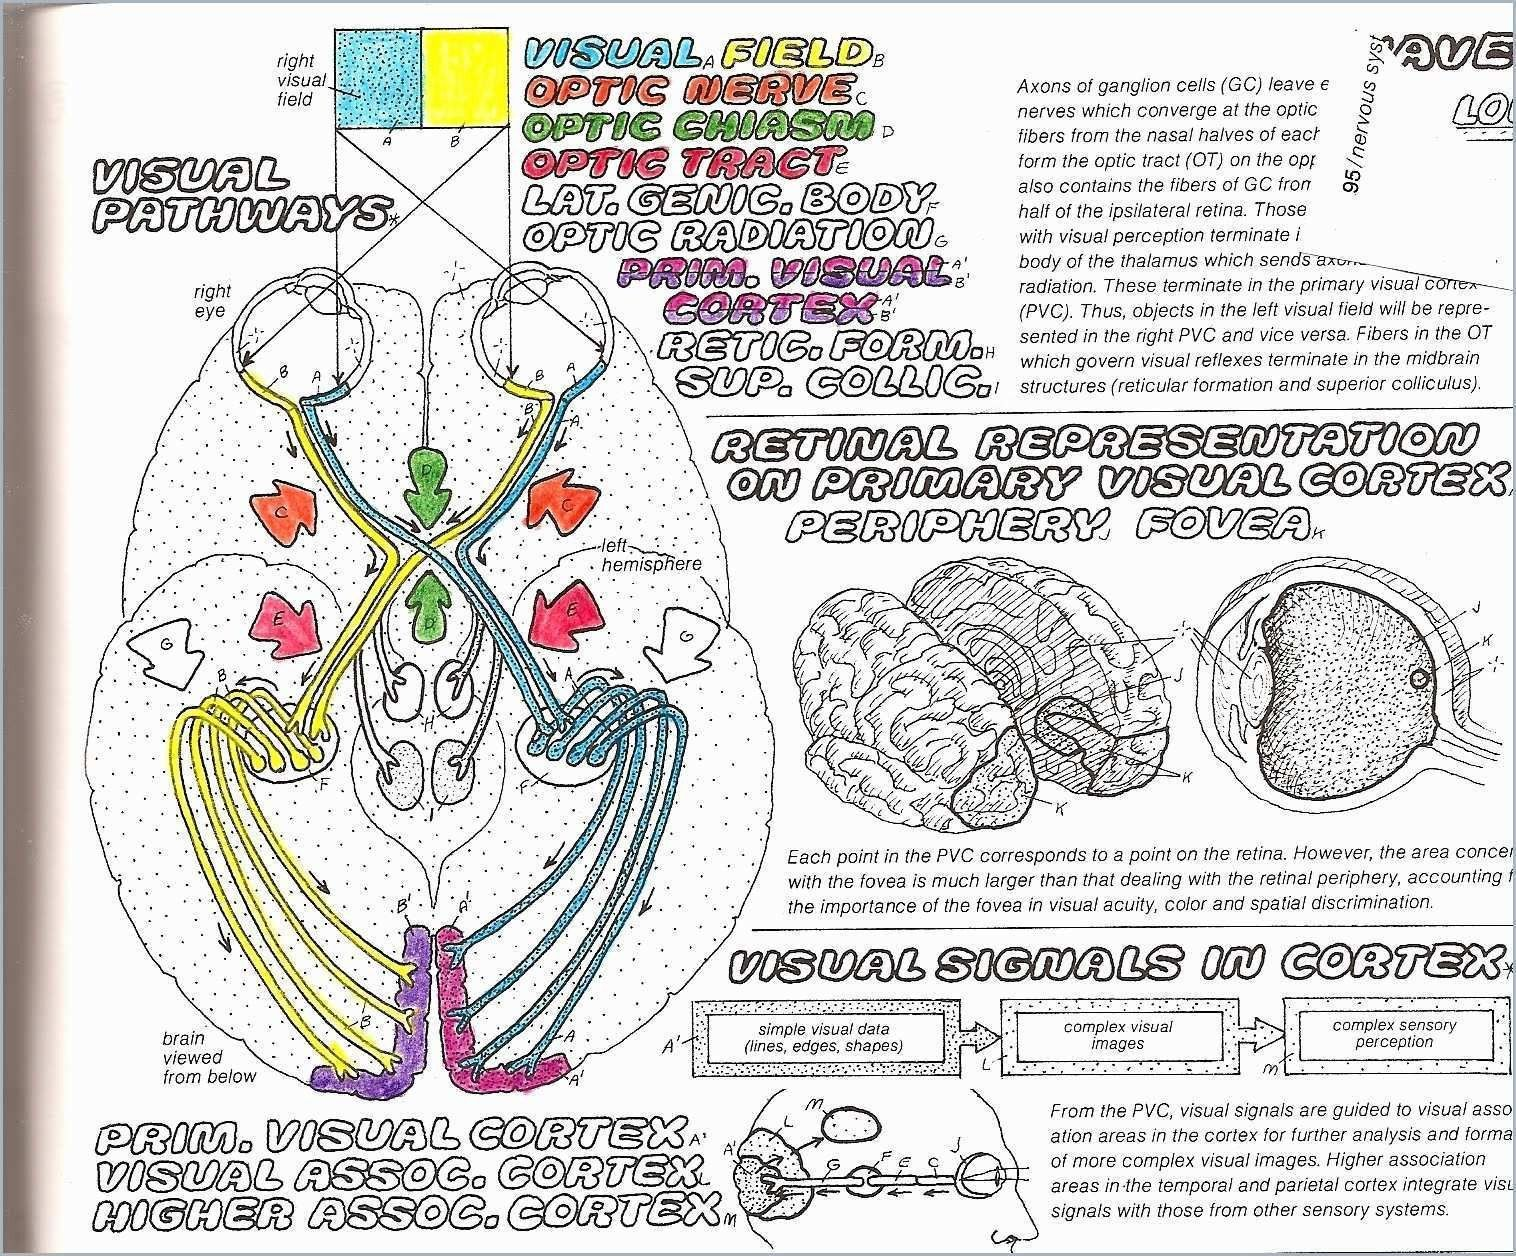 Anatomy Coloring Book Pdf Best Of Coloring Book 35 Dental Anatomy Coloring Book Inspirations Coloring Books Coloring Pages Inspirational Coloring Book Set